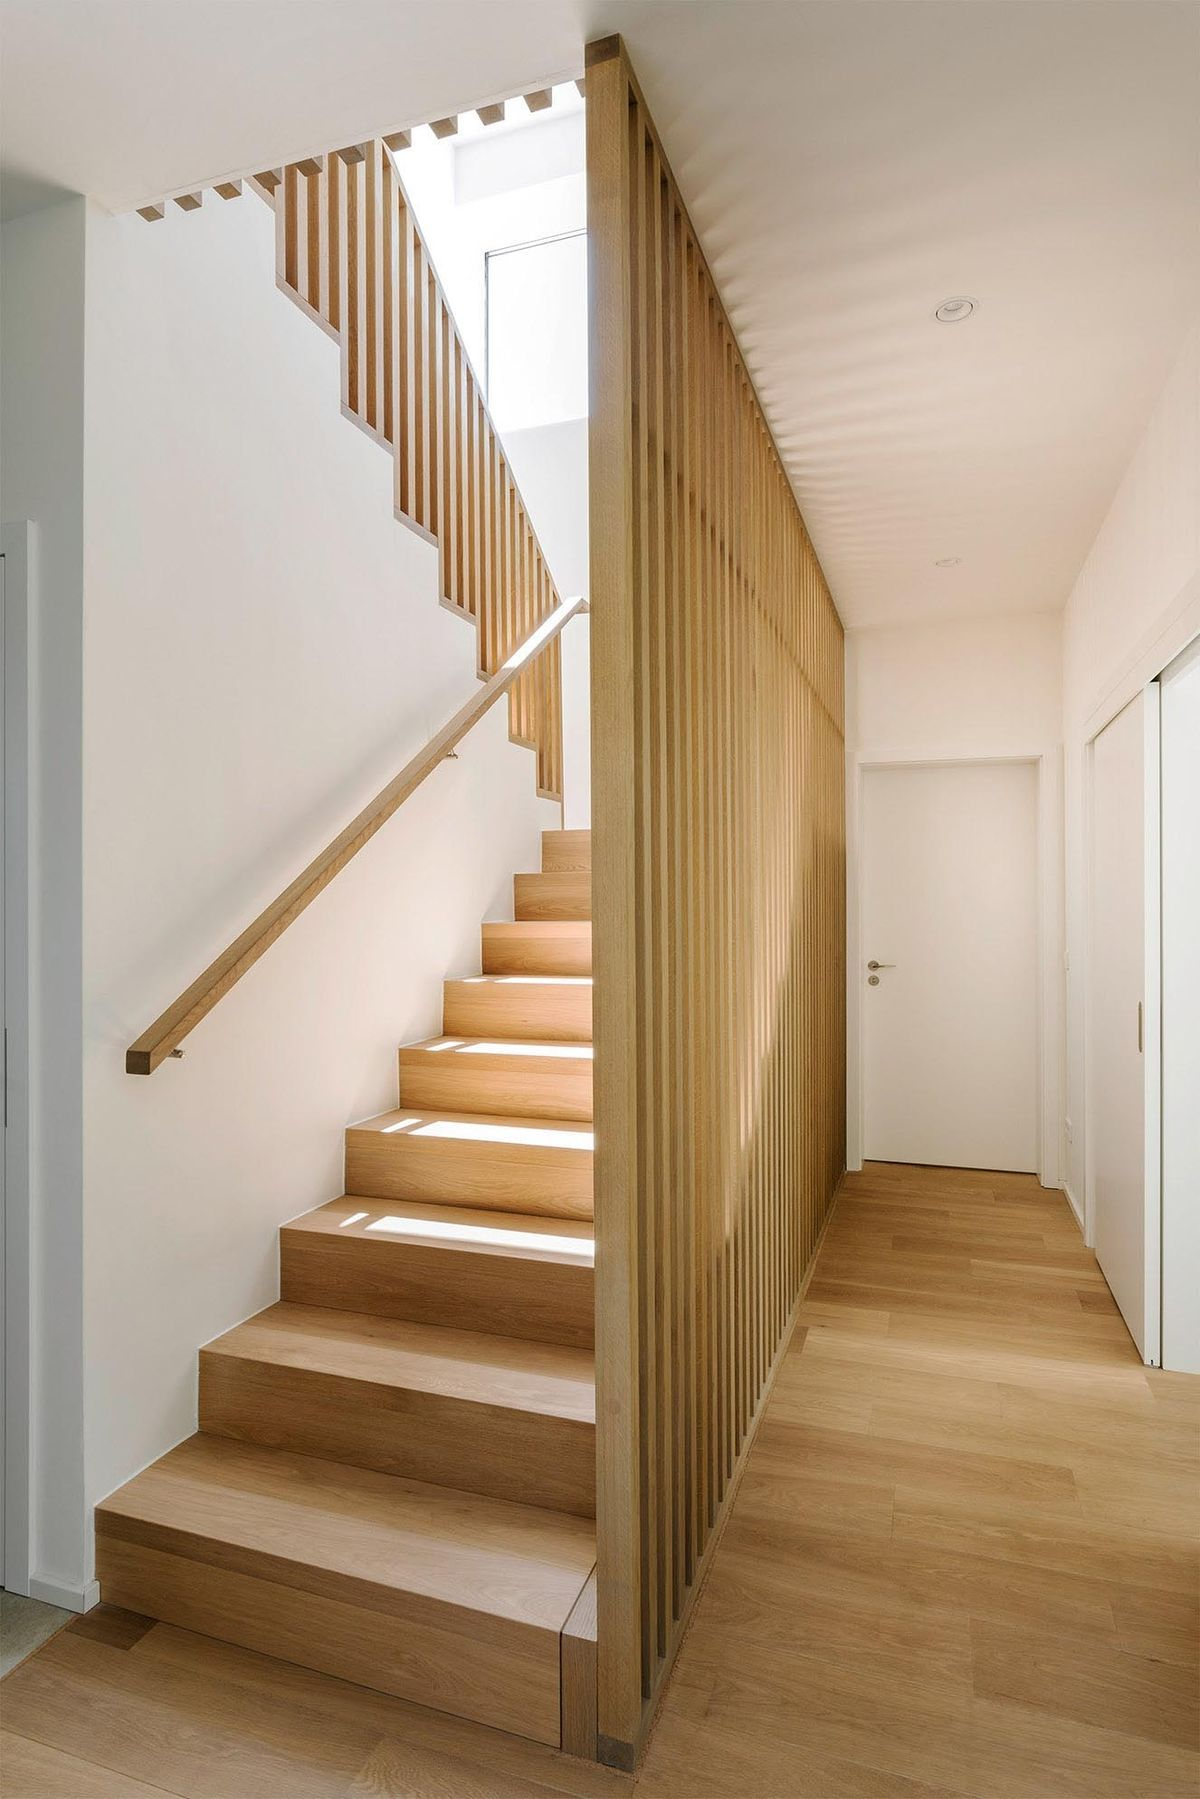 Stairs Railing Vertical Modern Wooden Staircase Design Wood Railings For Stairs Stairs Design Modern